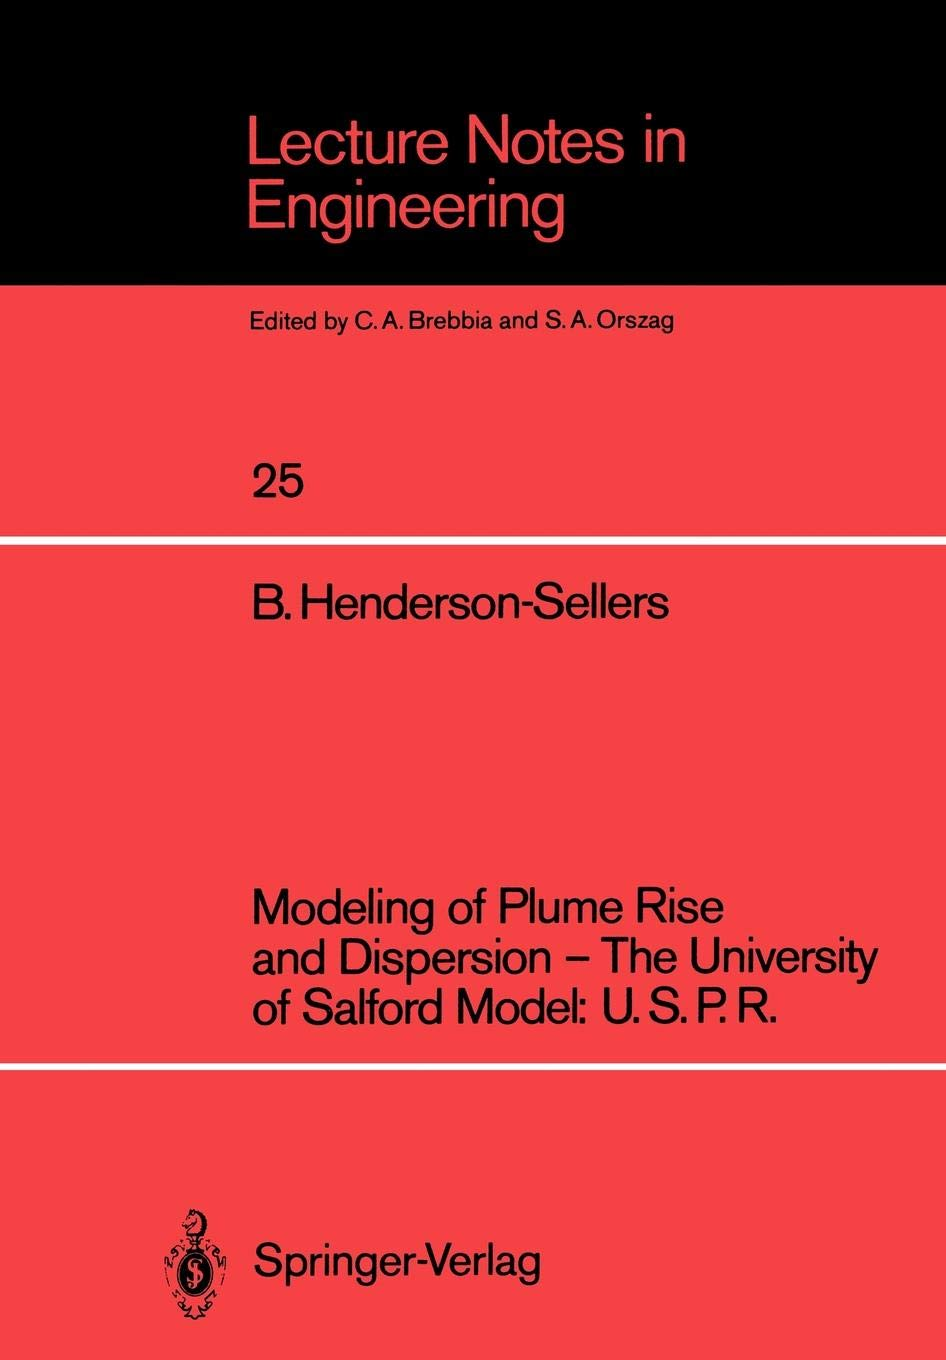 Modeling Of Plume Rise And Dispersion   The University Of Salford Model  U.S.P.R.  Lecture Notes In Engineering  25  Band 25